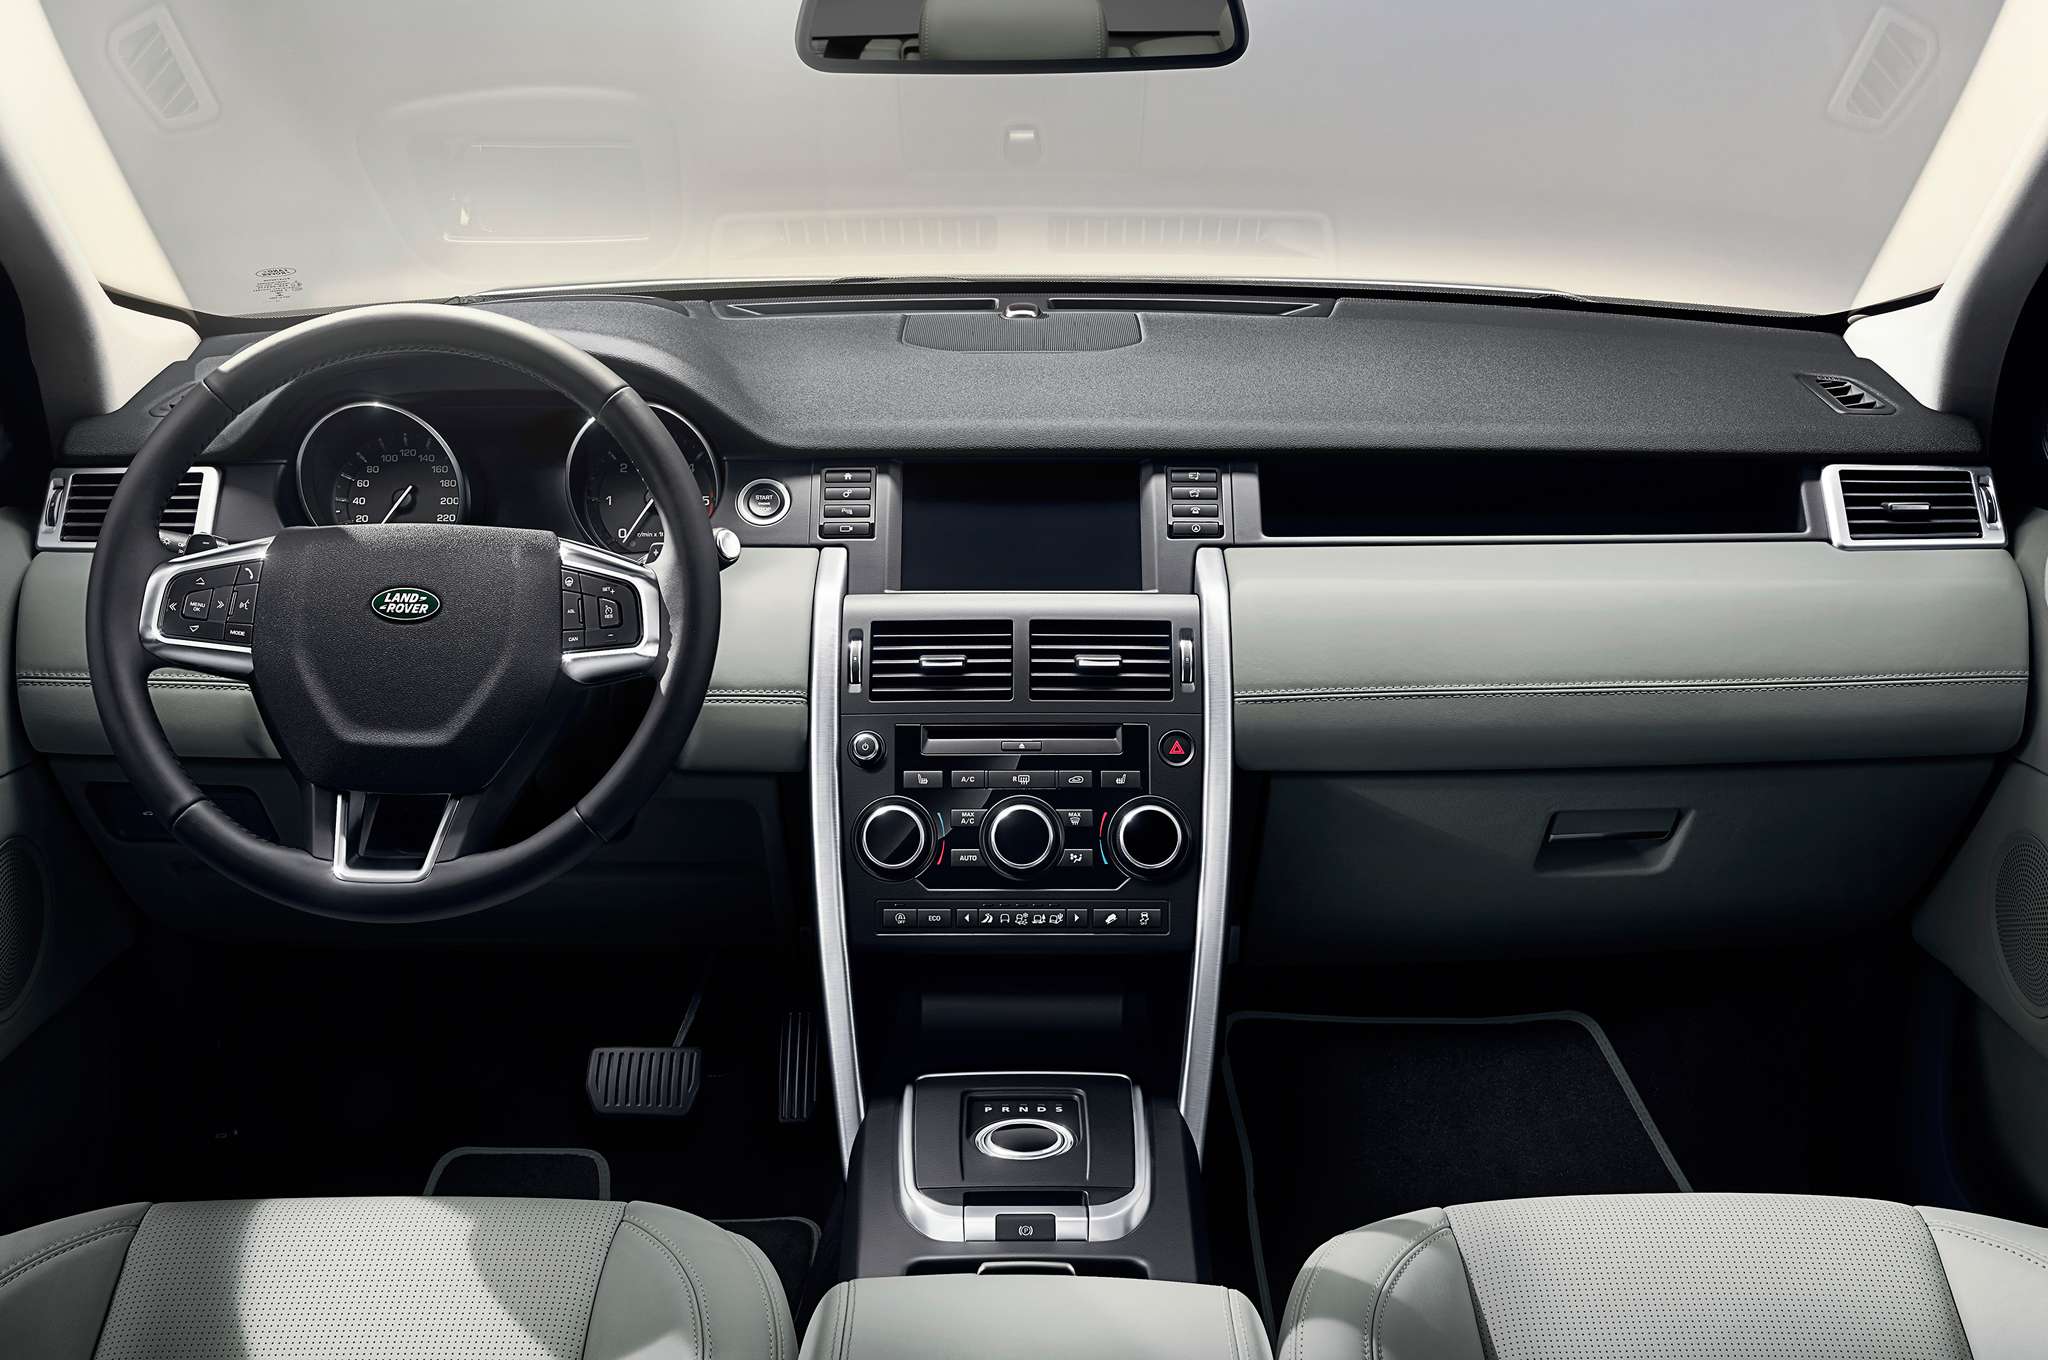 amazing-design-of-the-black-and-grey-dash-ideas-with-grey-seats-as-car-interior-ideas-of-the-land-rover-discovery-sport-2015-interior